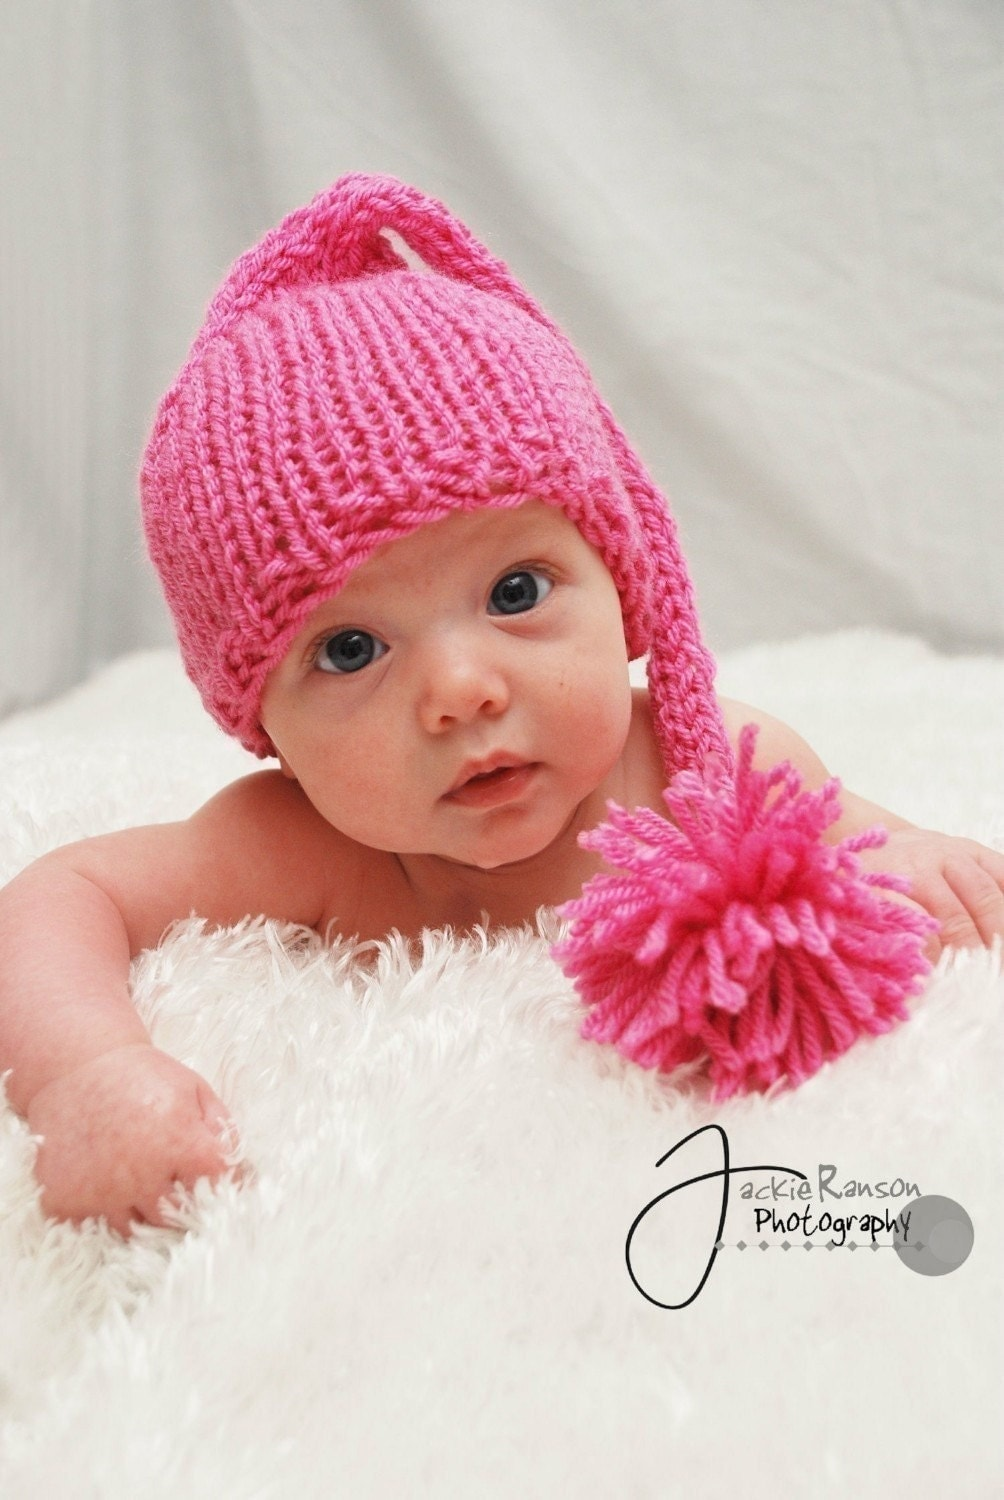 Knitting Patterns For Baby Elf Hats : Baby Elf Hat Knit Baby Hat Newborn Baby Pink Elf Hat Baby